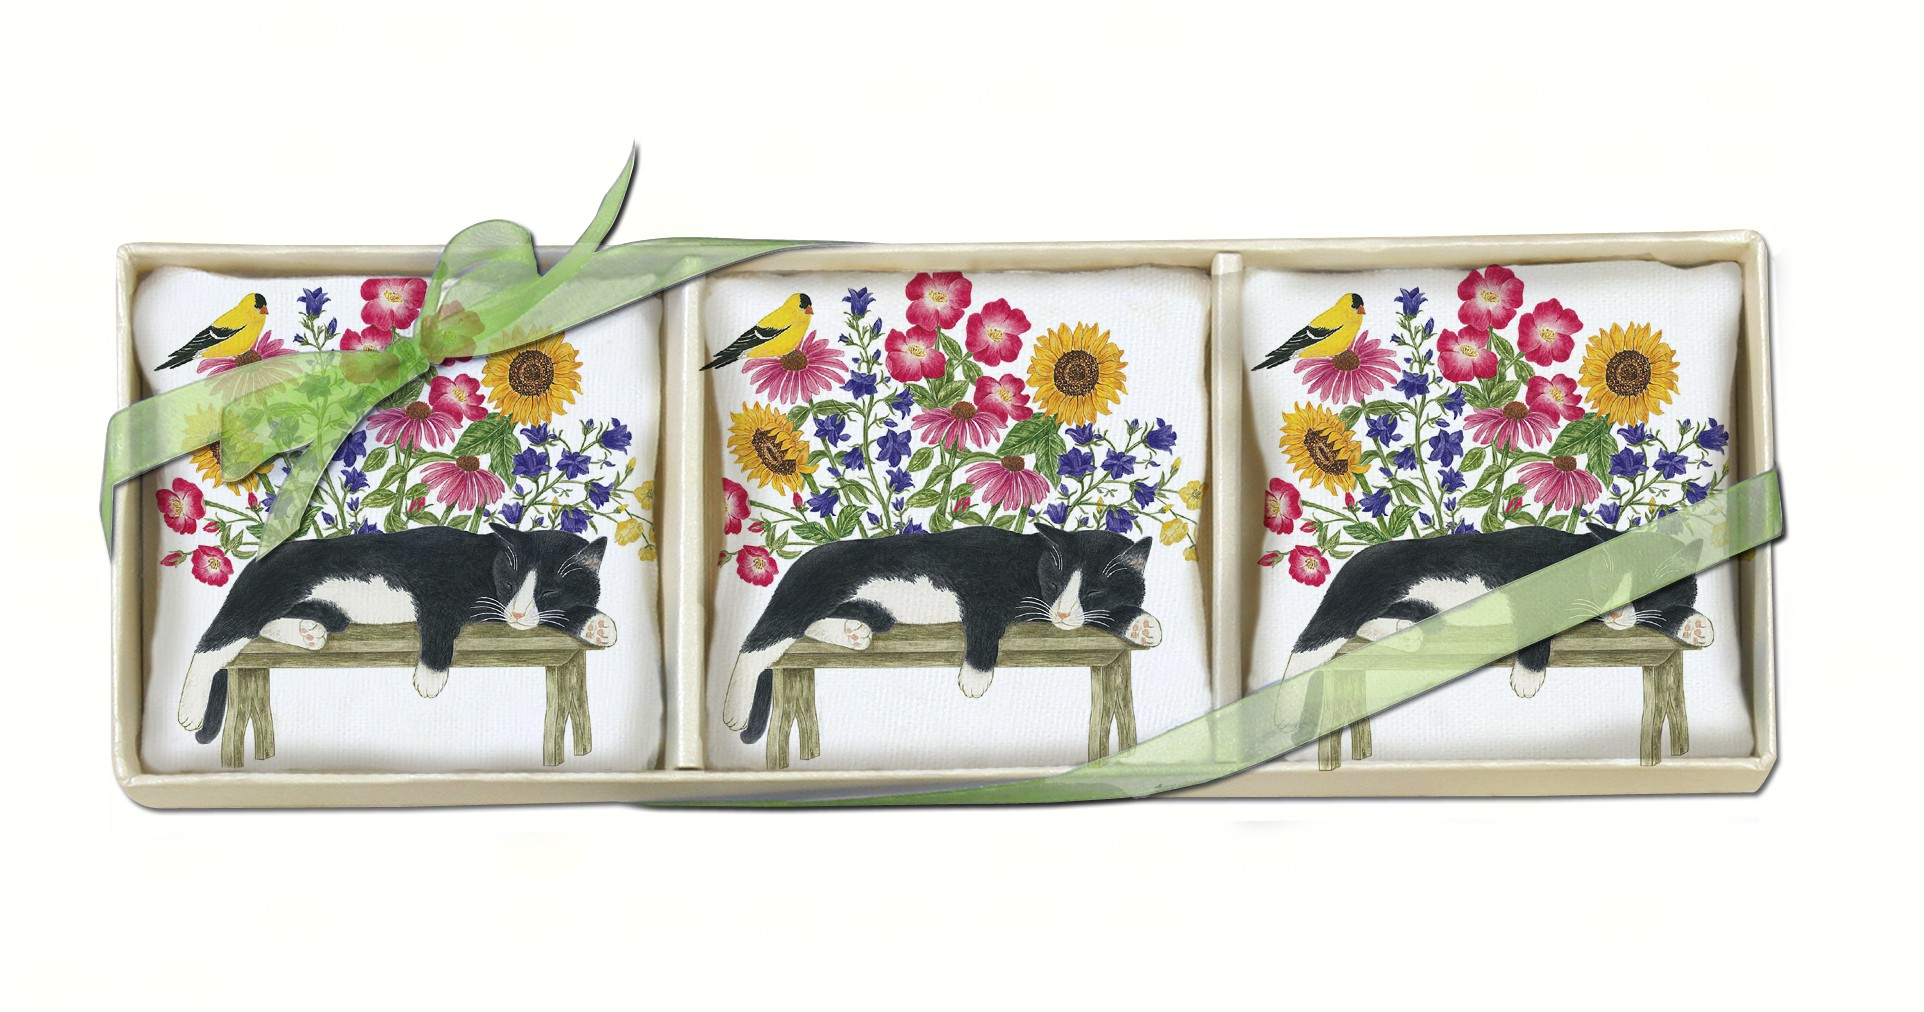 Cat on Bench Gift Boxed Lavendar Sachets (3 pcs)